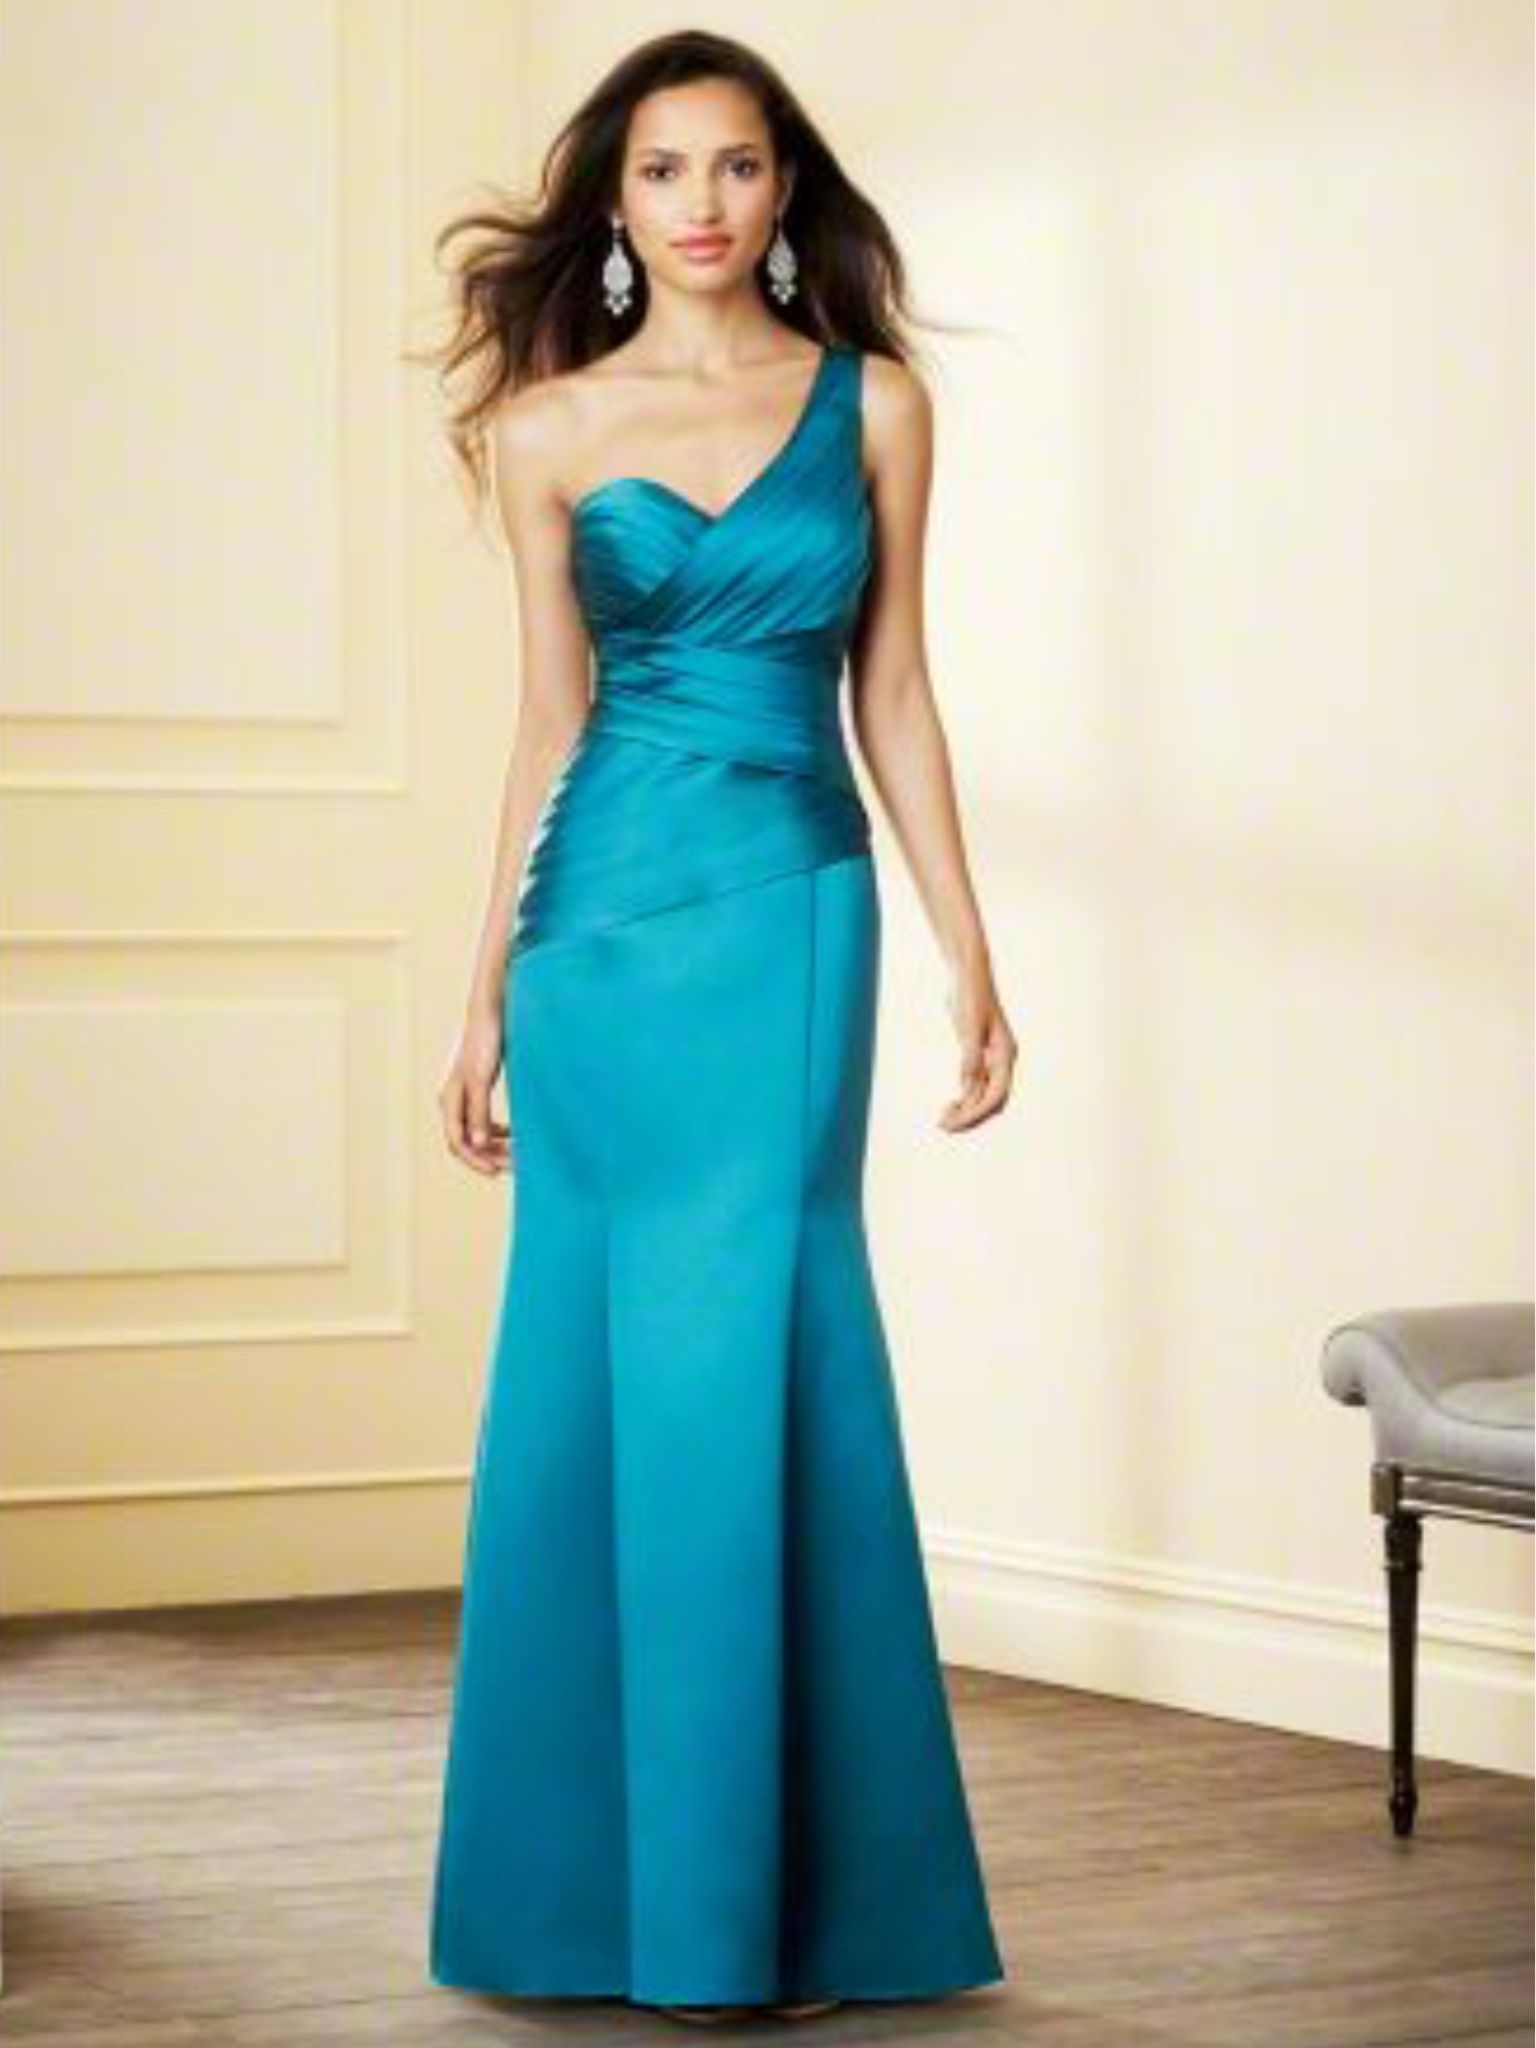 Alfred Angelo Bridesmaid Dress | Teal, Gold, Turquoise and Purple ...